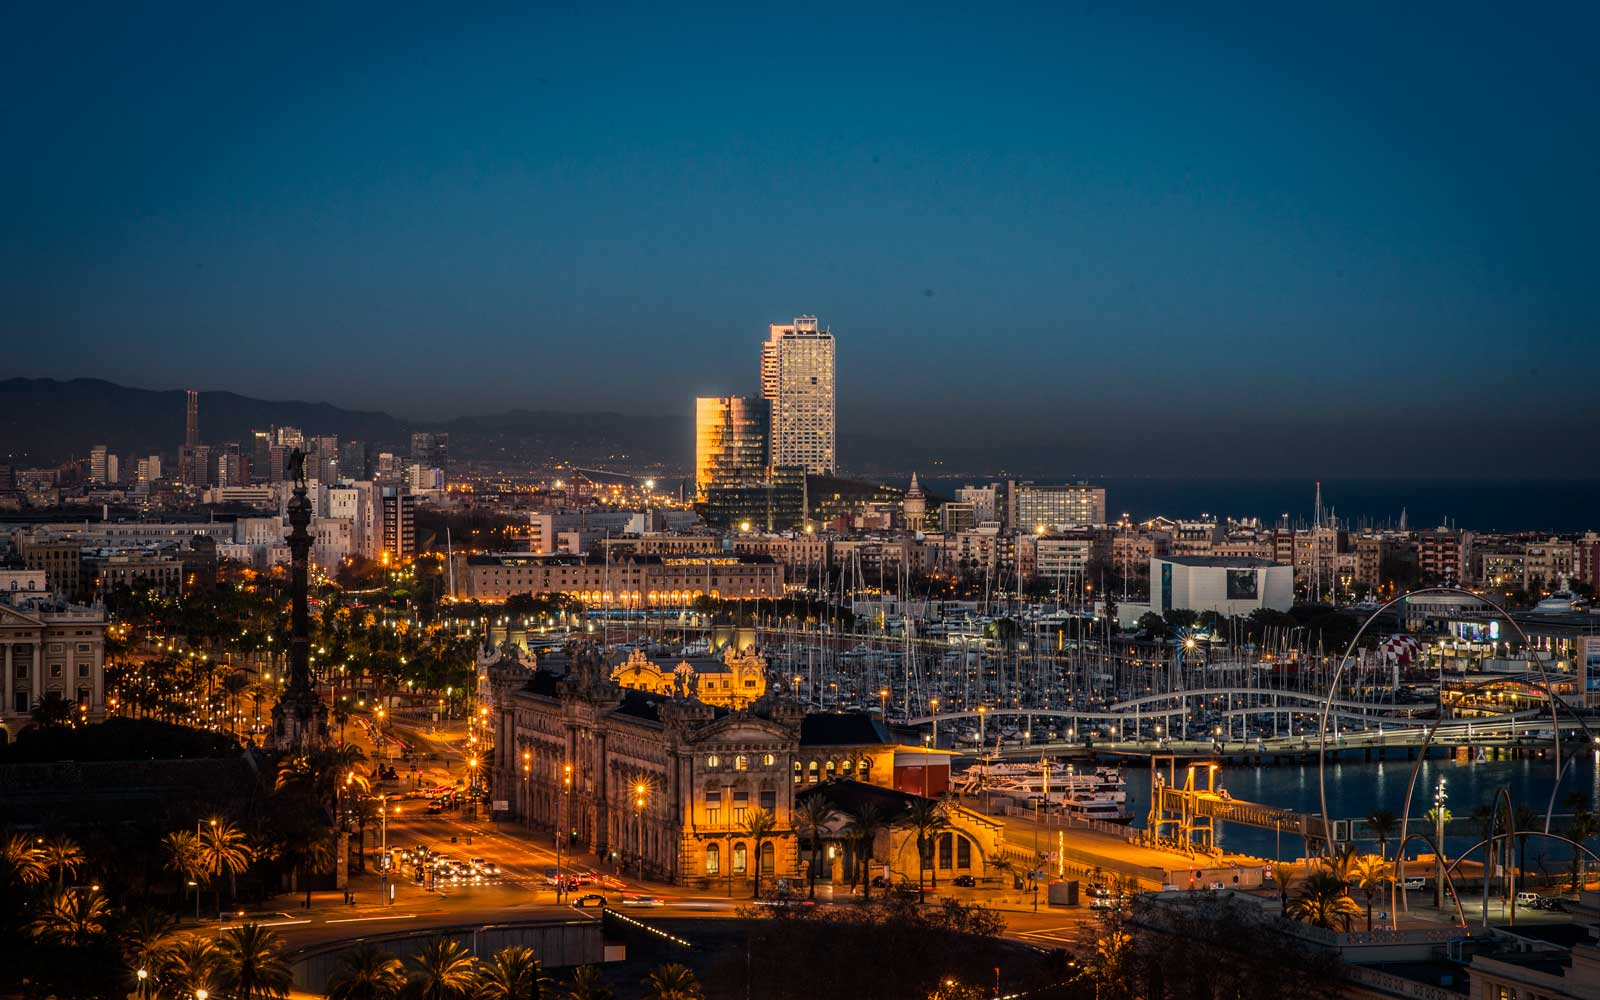 Skyline of Barcelona, Spain at night.